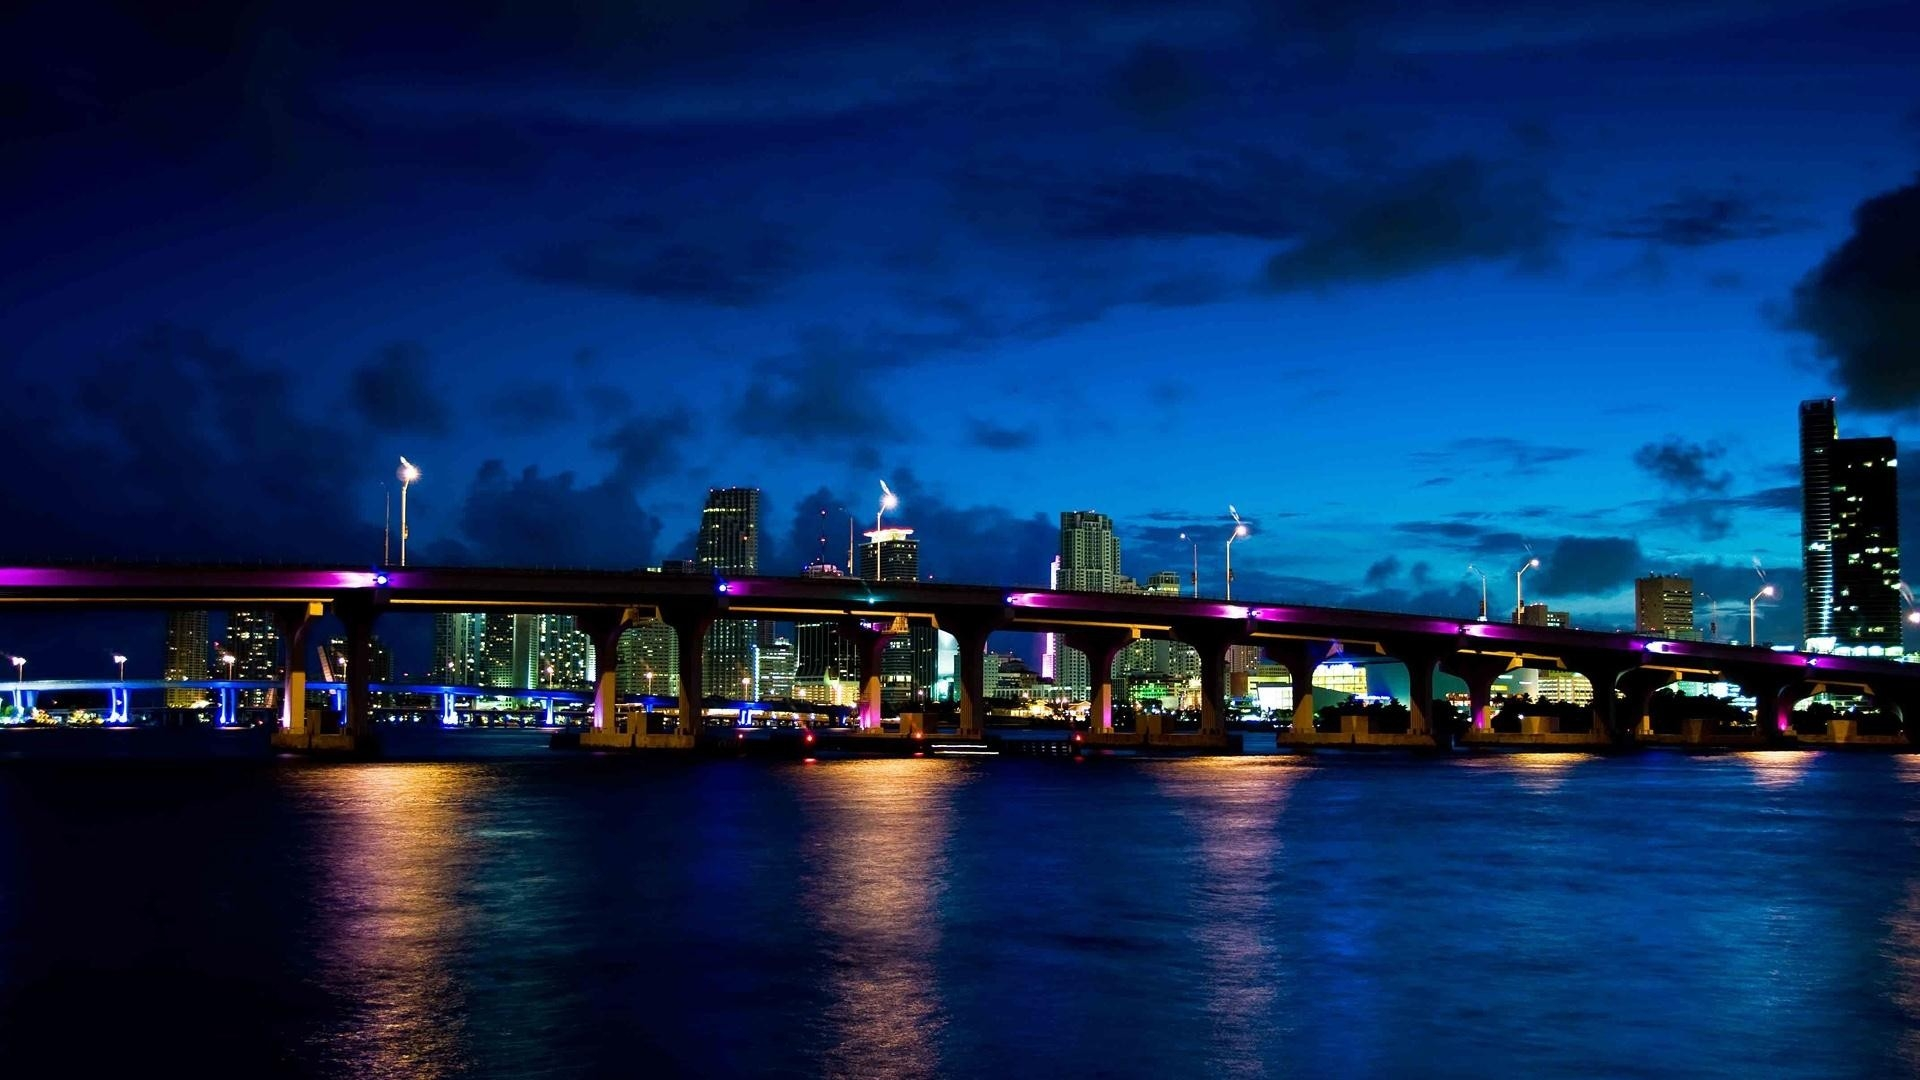 Bridge night city HD Desktop Wallpaper HD Desktop Wallpaper 1920x1080